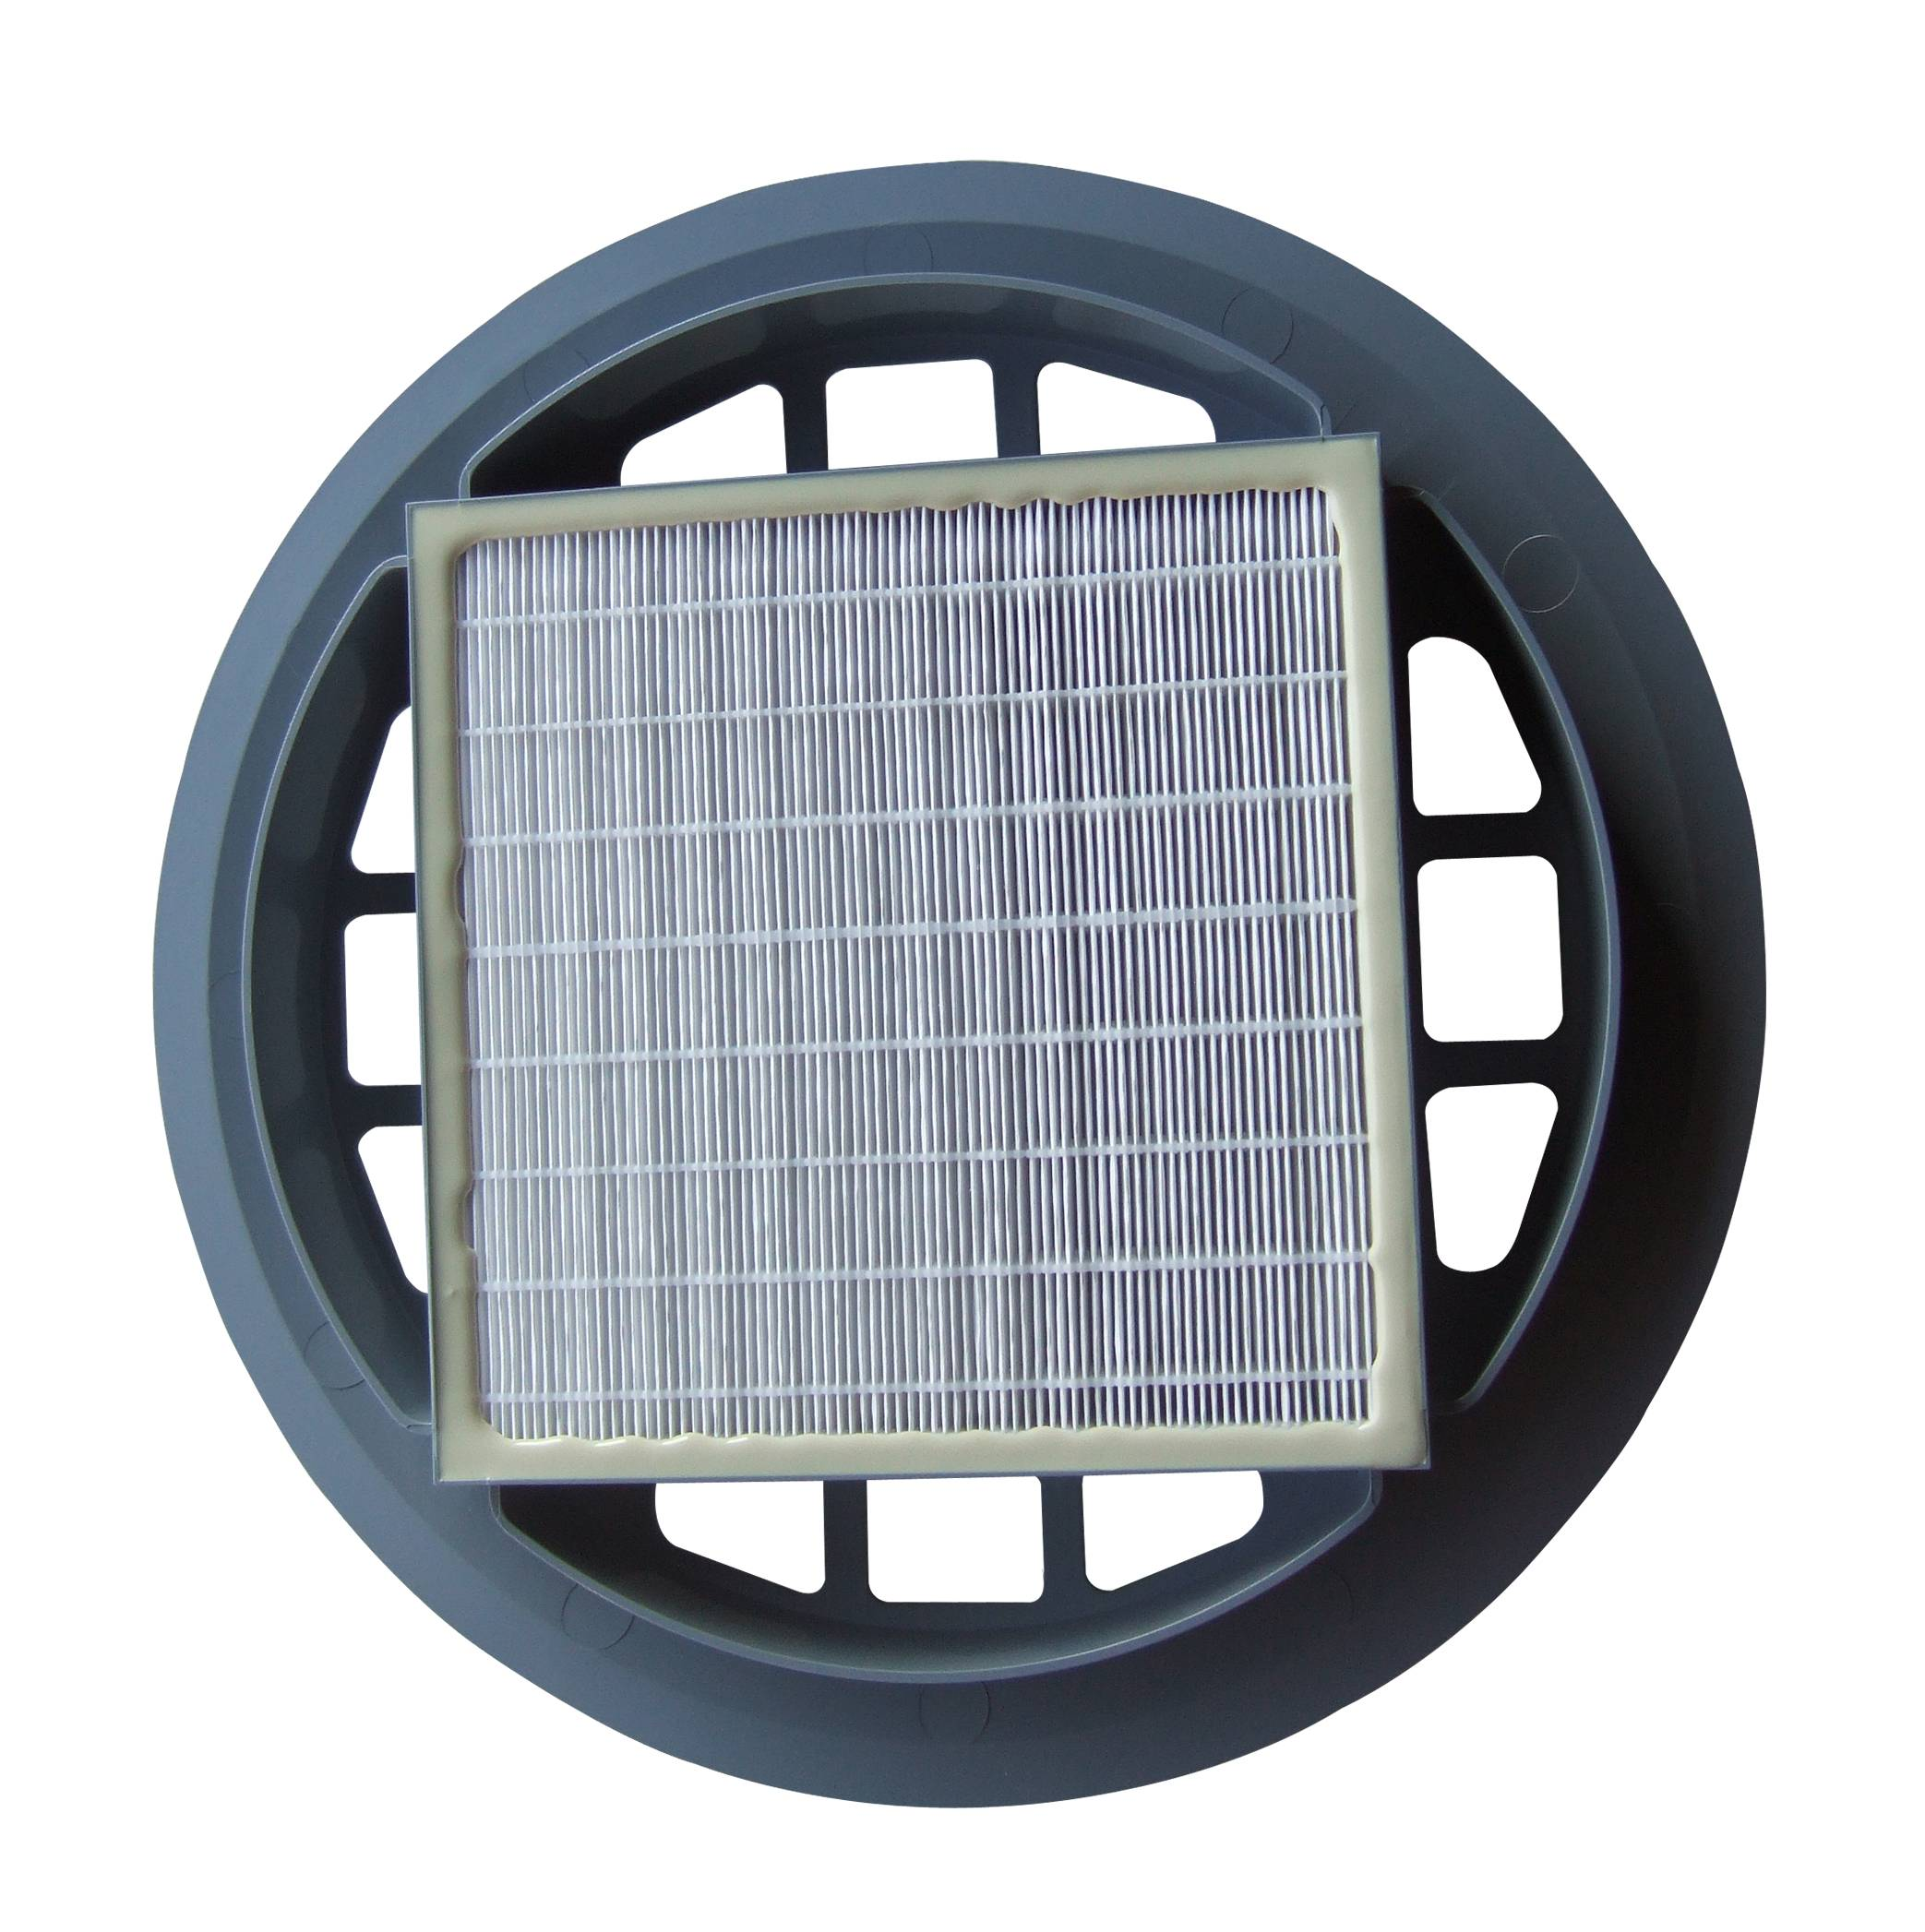 HEPA Filter For Nilfisk GD930 Industrial Canister Vacuum Cleaner